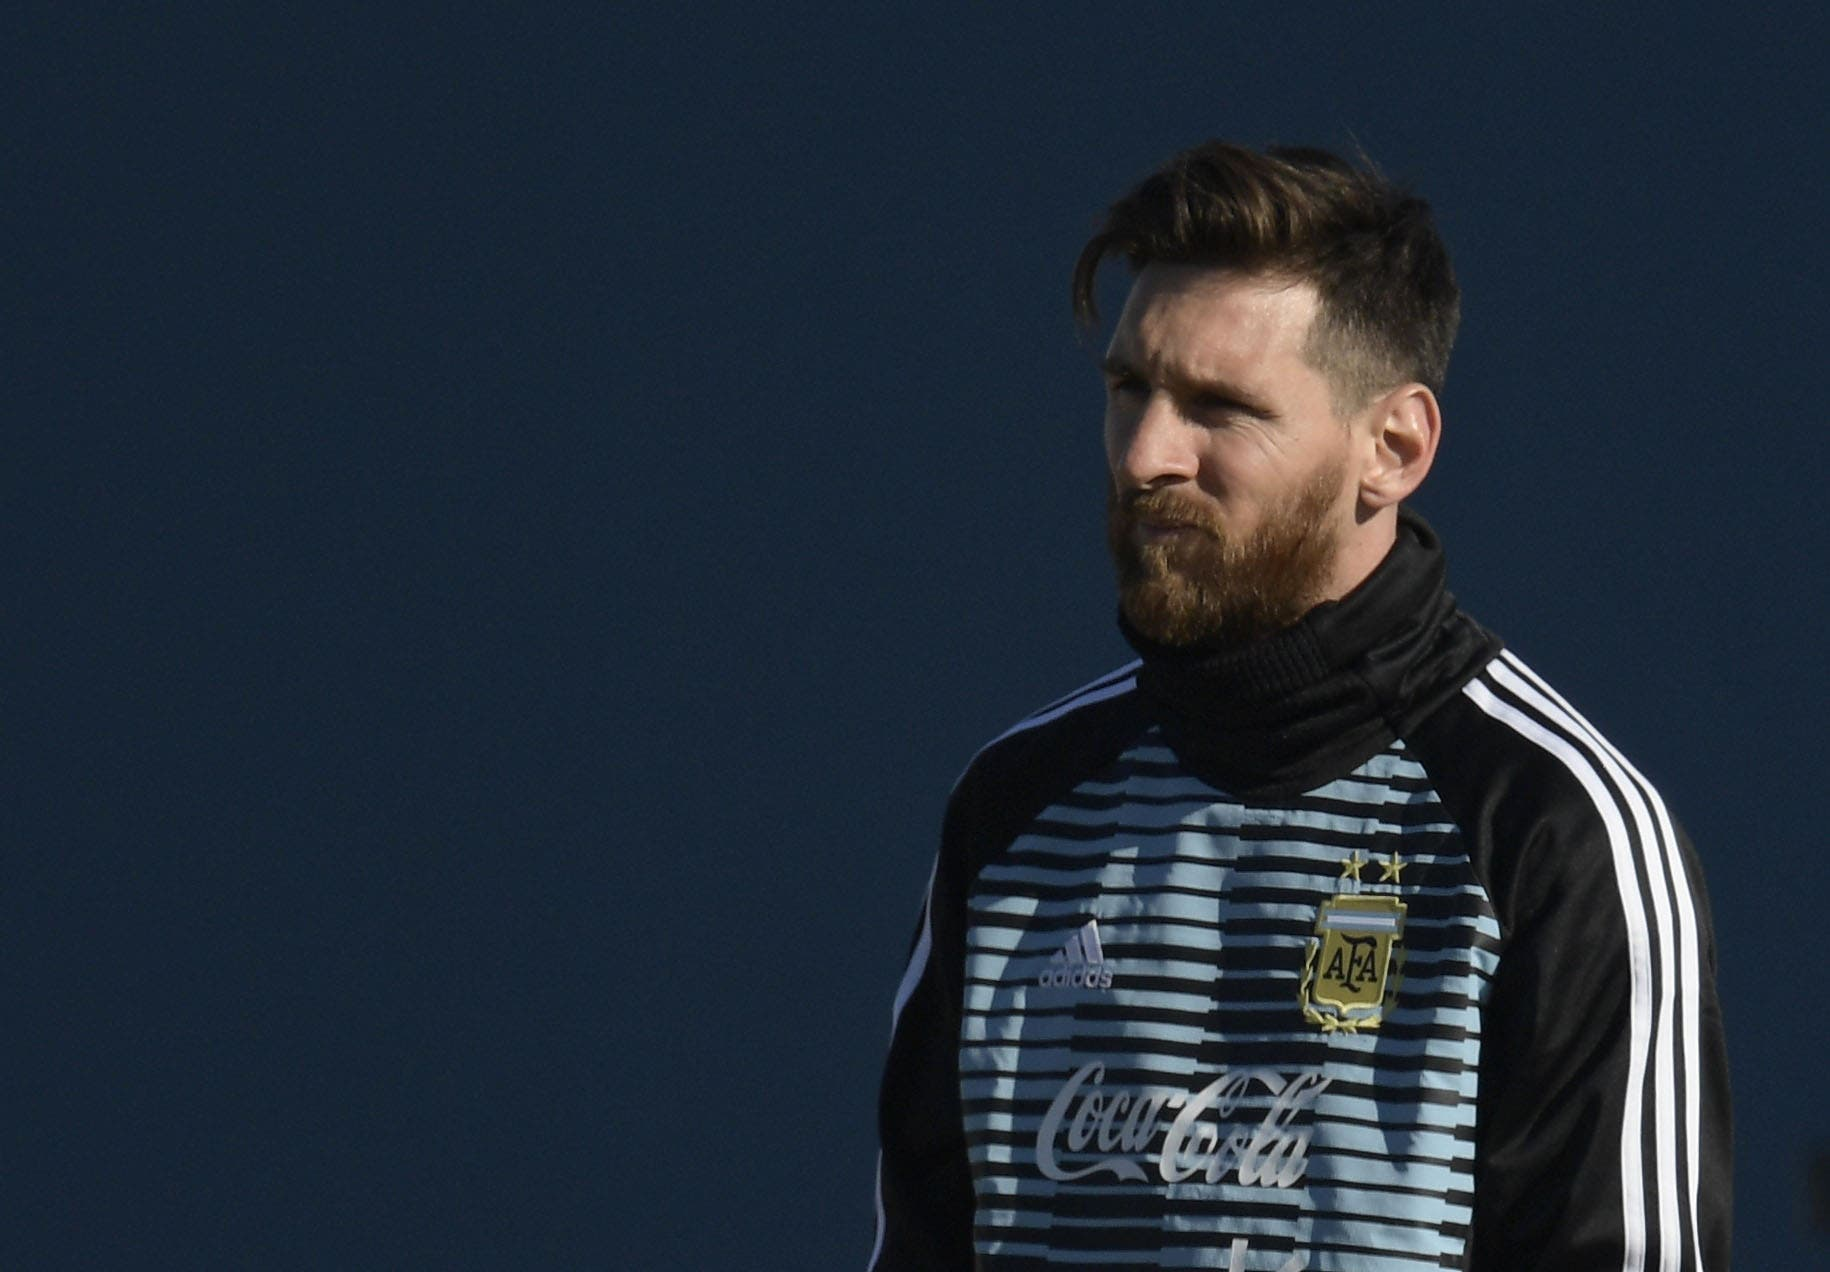 """Argentina's football team forward Lionel Messi (R) is pictured, during a training session in Ezeiza, Buenos Aires on May 22, 2018.  The Argentinian team is training ahead of a friendly match against Haiti to be held on May 29 at """"La Bombonera"""" stadium in Buenos Aires, before departing to Barcelona, to prepare for the upcoming FIFA World Cup 2018 in Russia. / AFP / JUAN MABROMATA"""